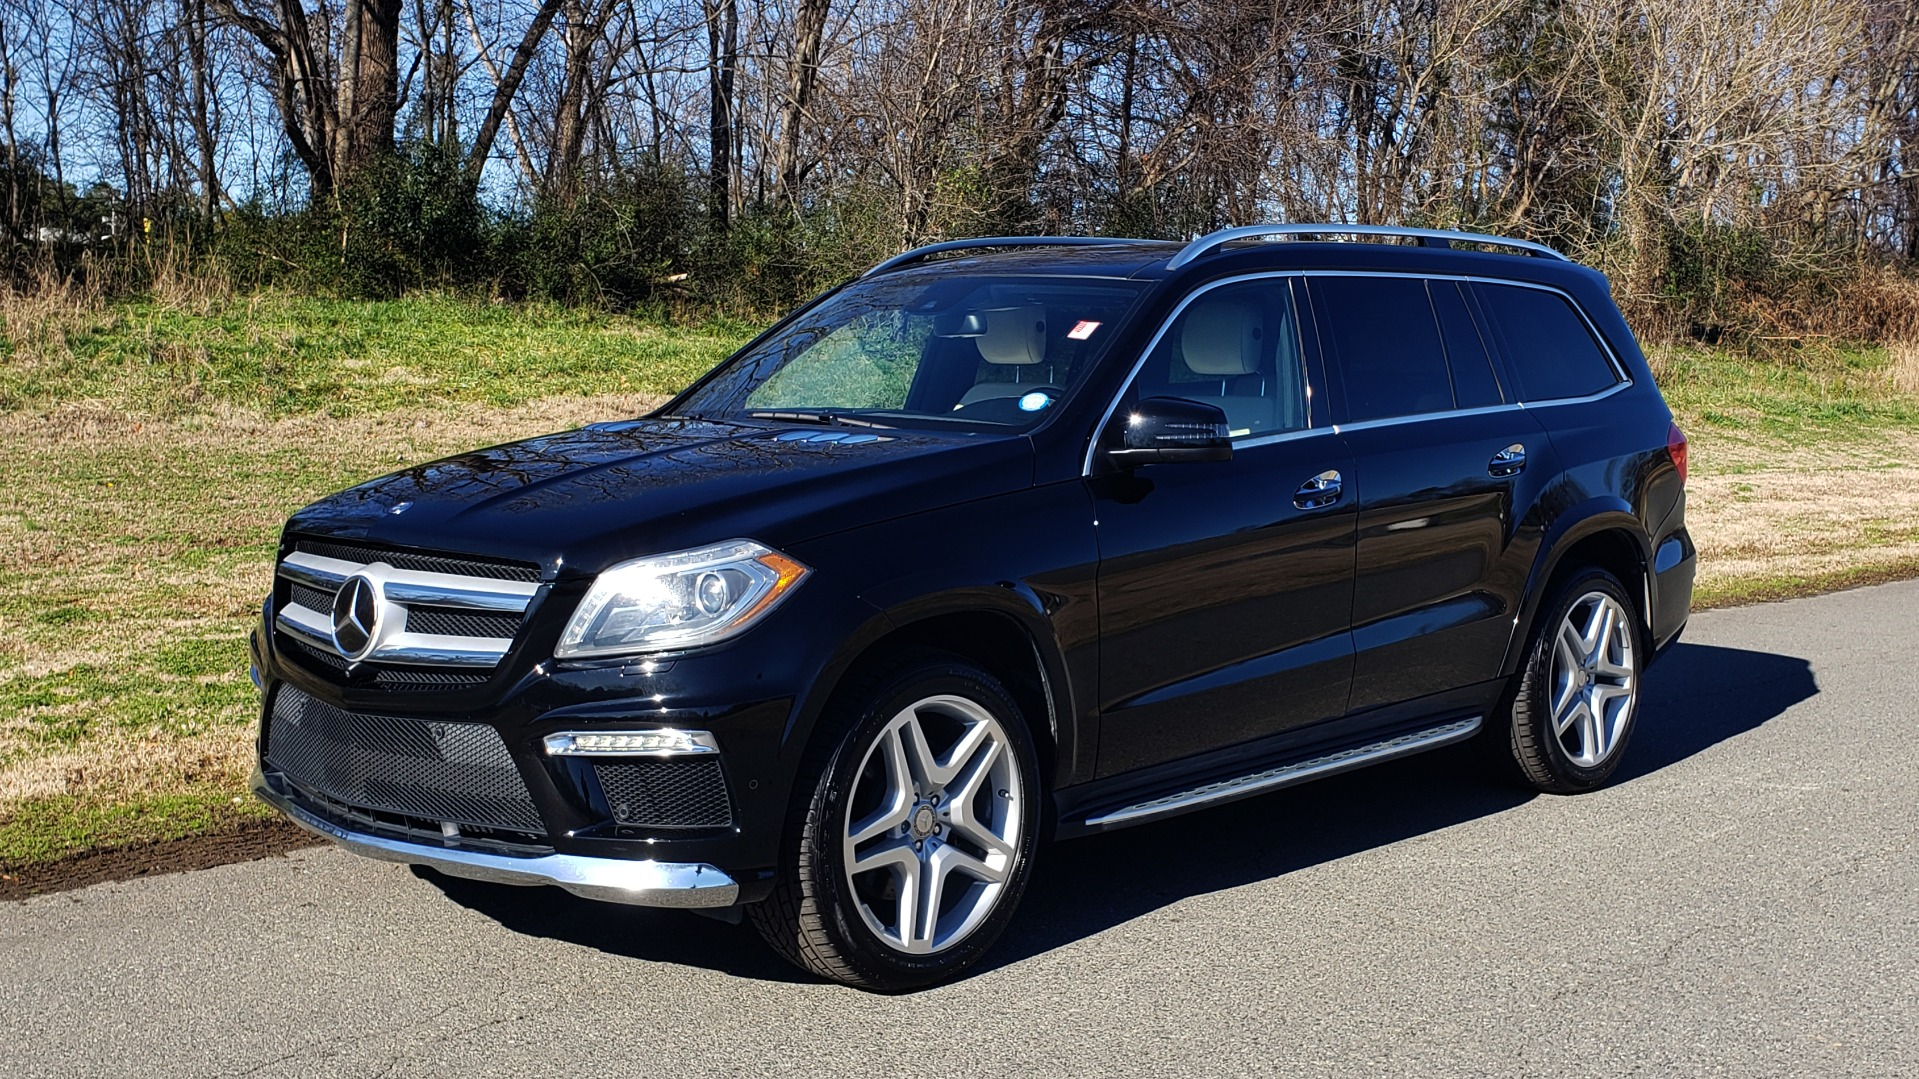 Used 2015 Mercedes-Benz GL-Class GL 550 4MATIC / DRVR ASST / PANO-ROOF / DESIGNO / REARVIEW for sale Sold at Formula Imports in Charlotte NC 28227 1